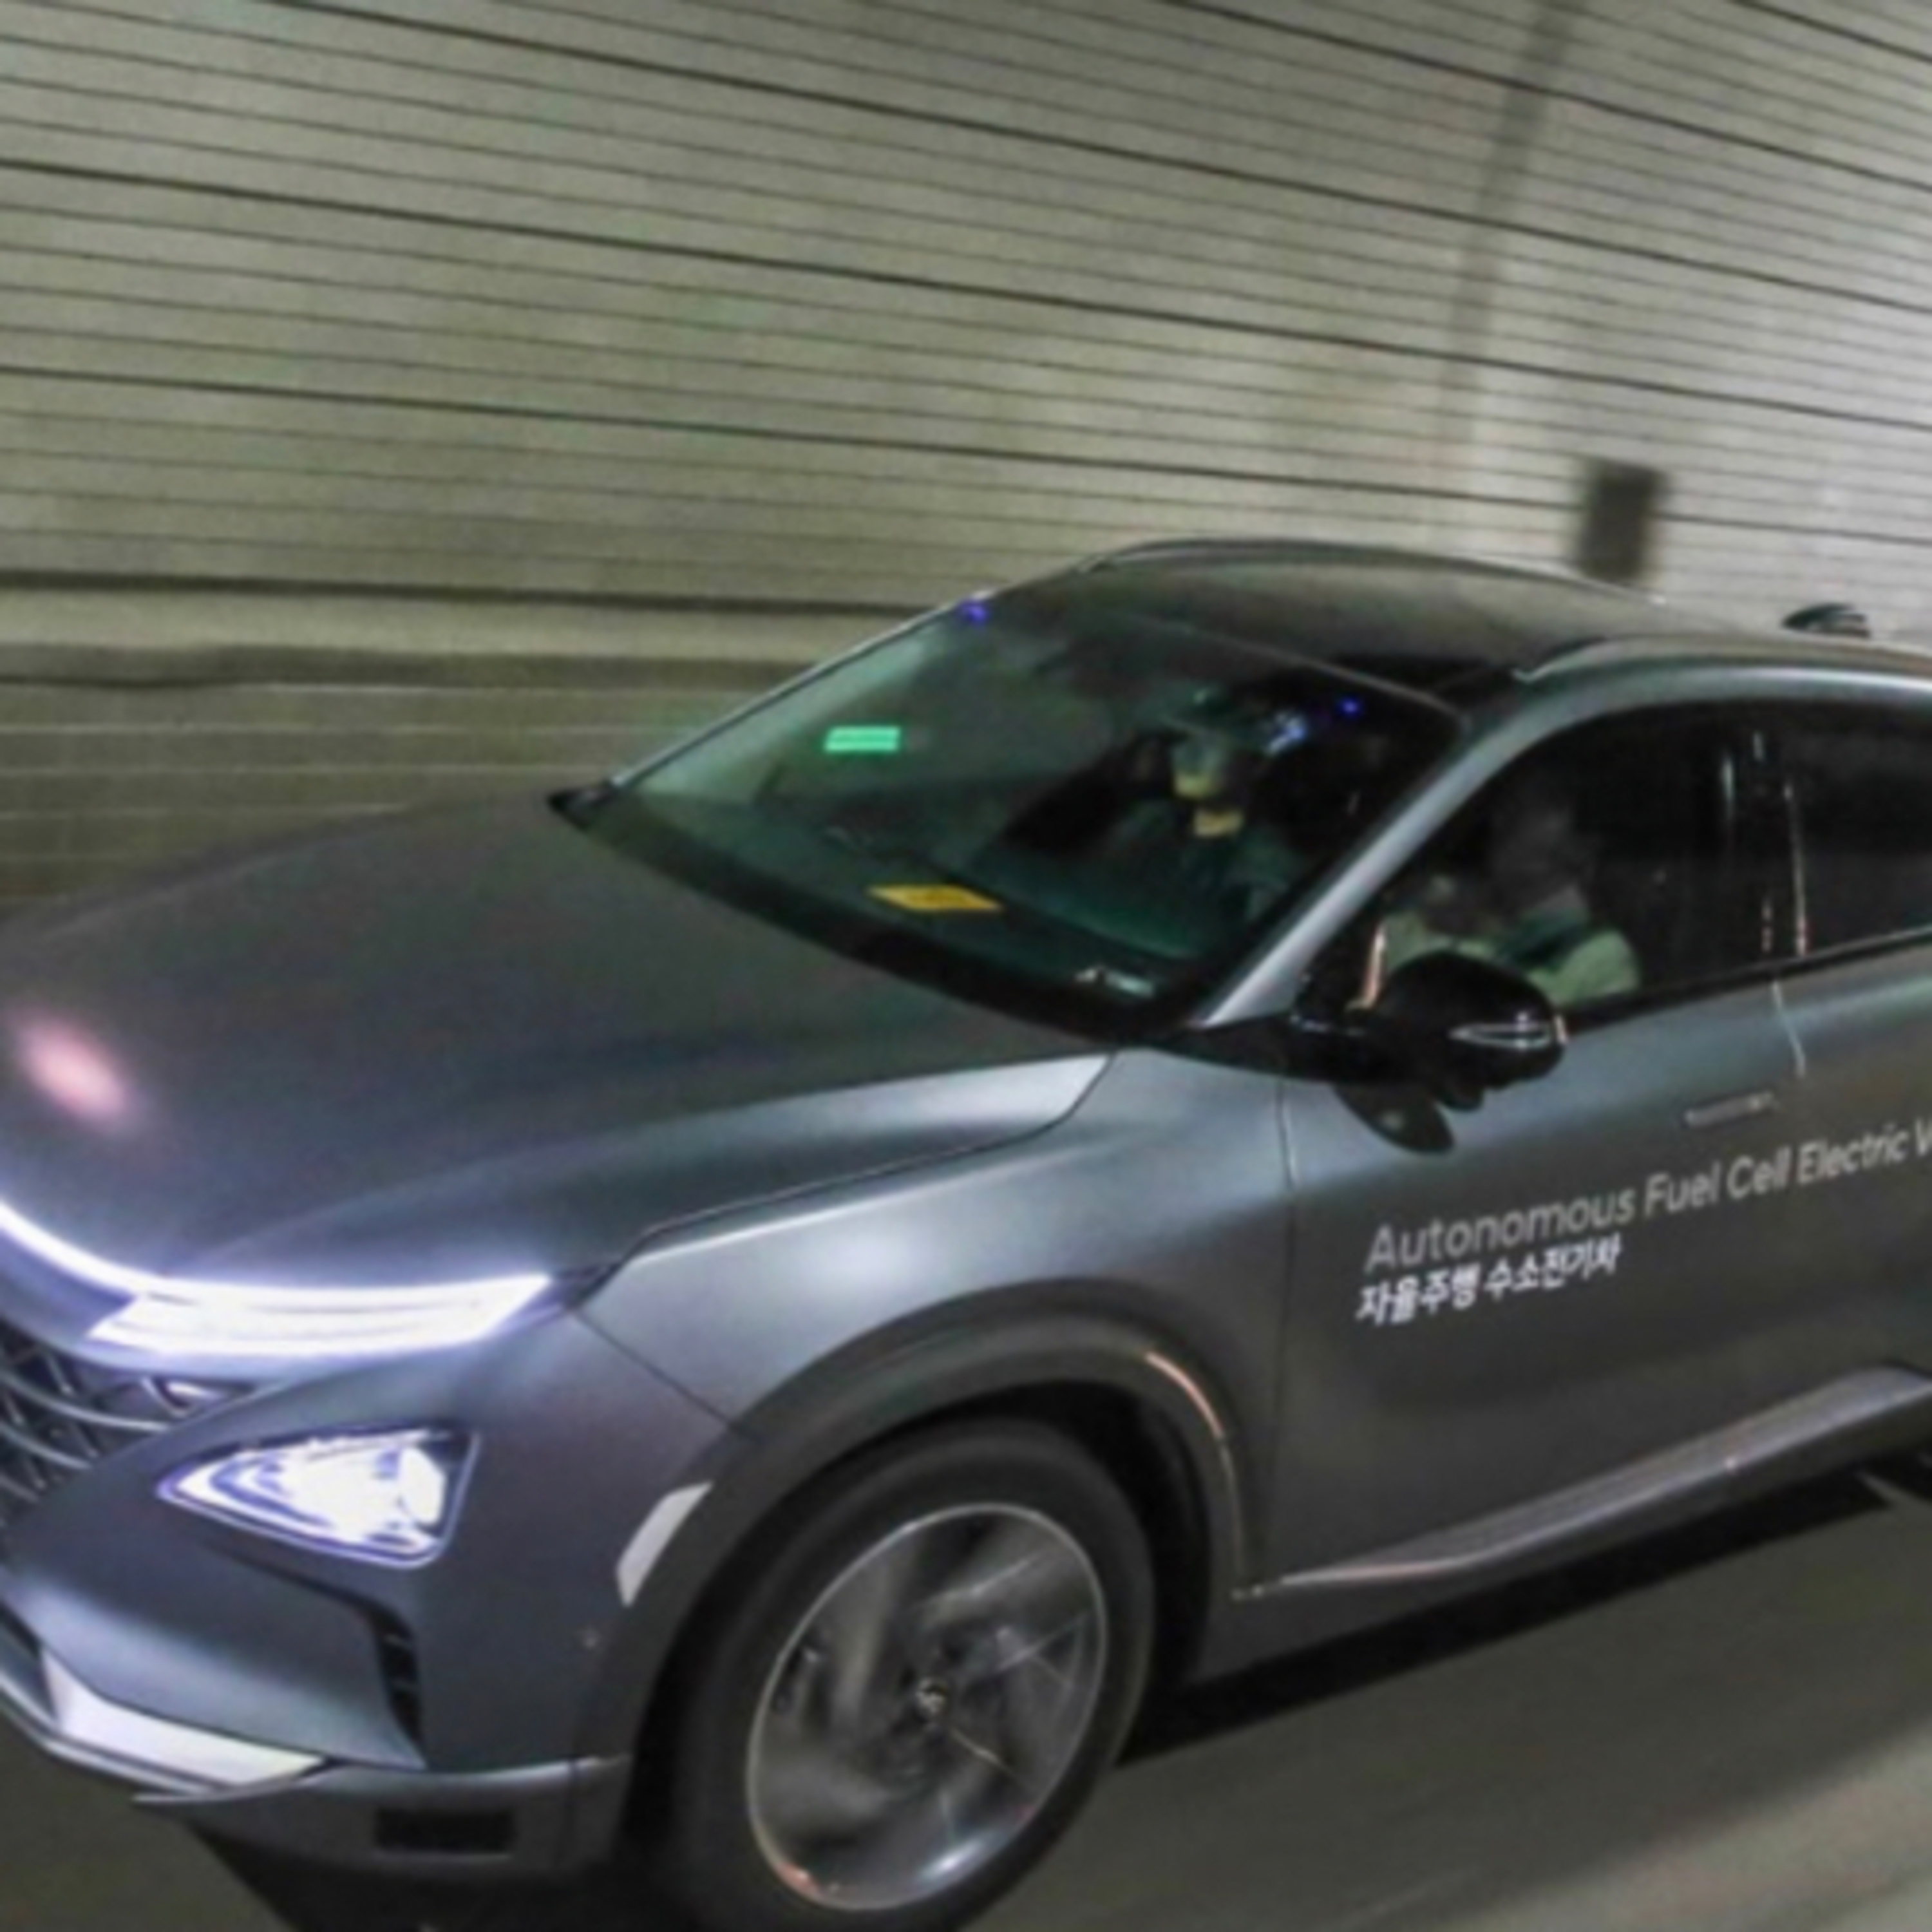 Death by a self driving SUV